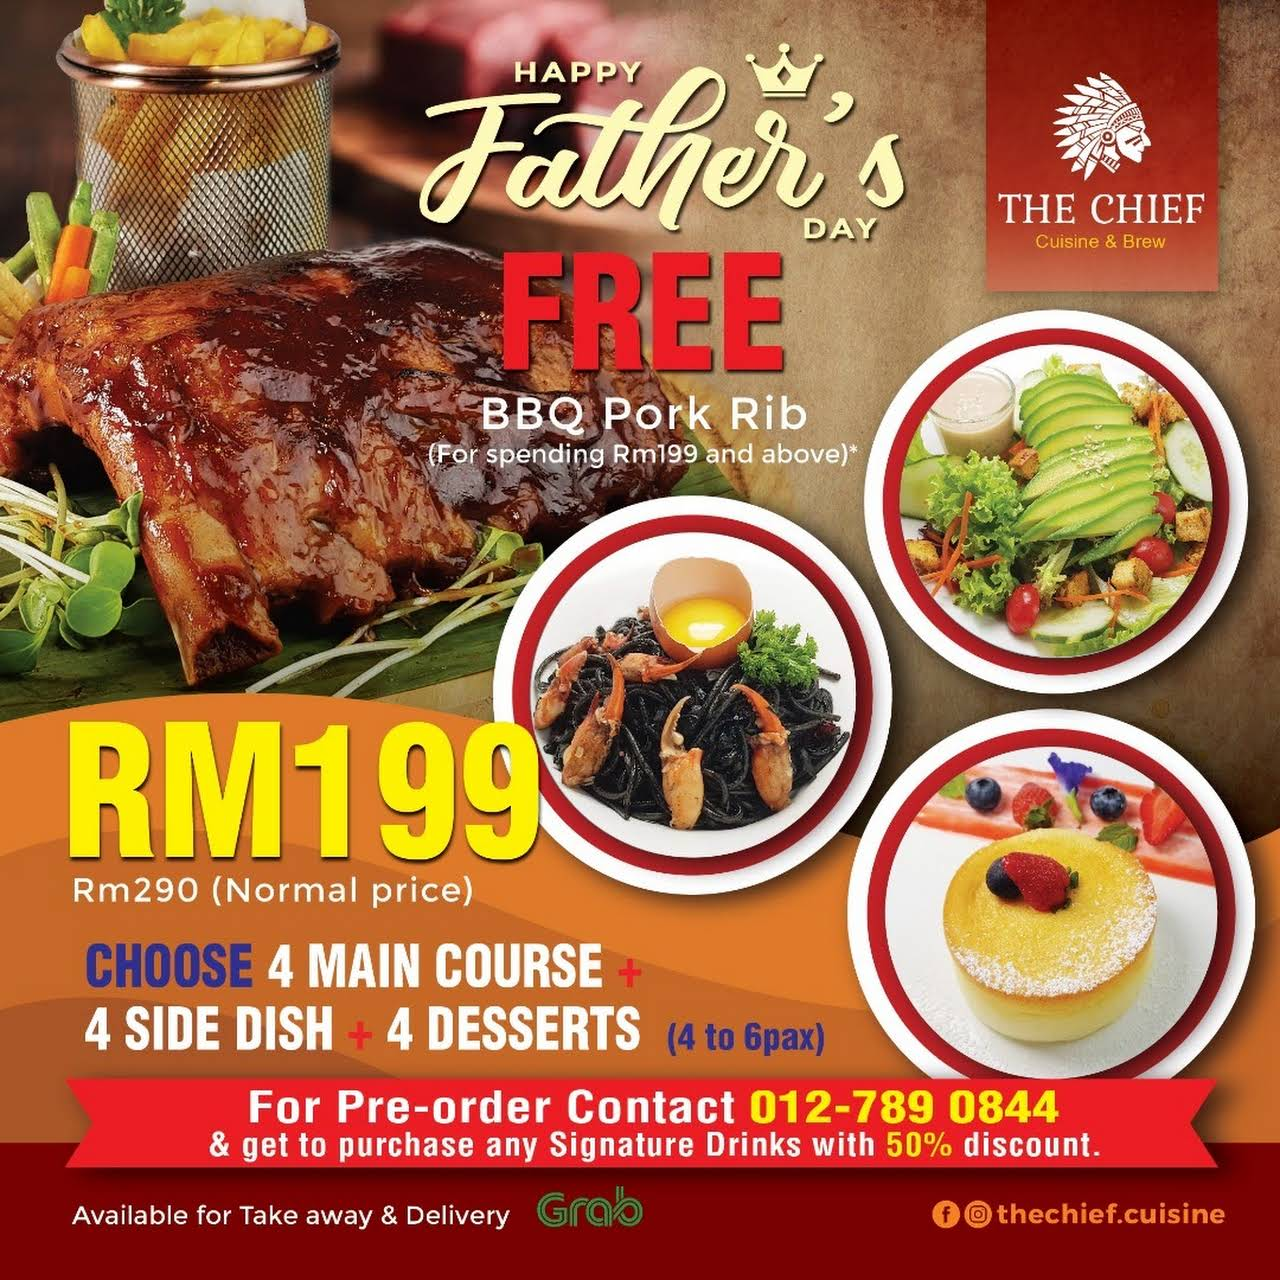 The Chief Cuisine Brew Restaurant Serving Modern Cuisine And